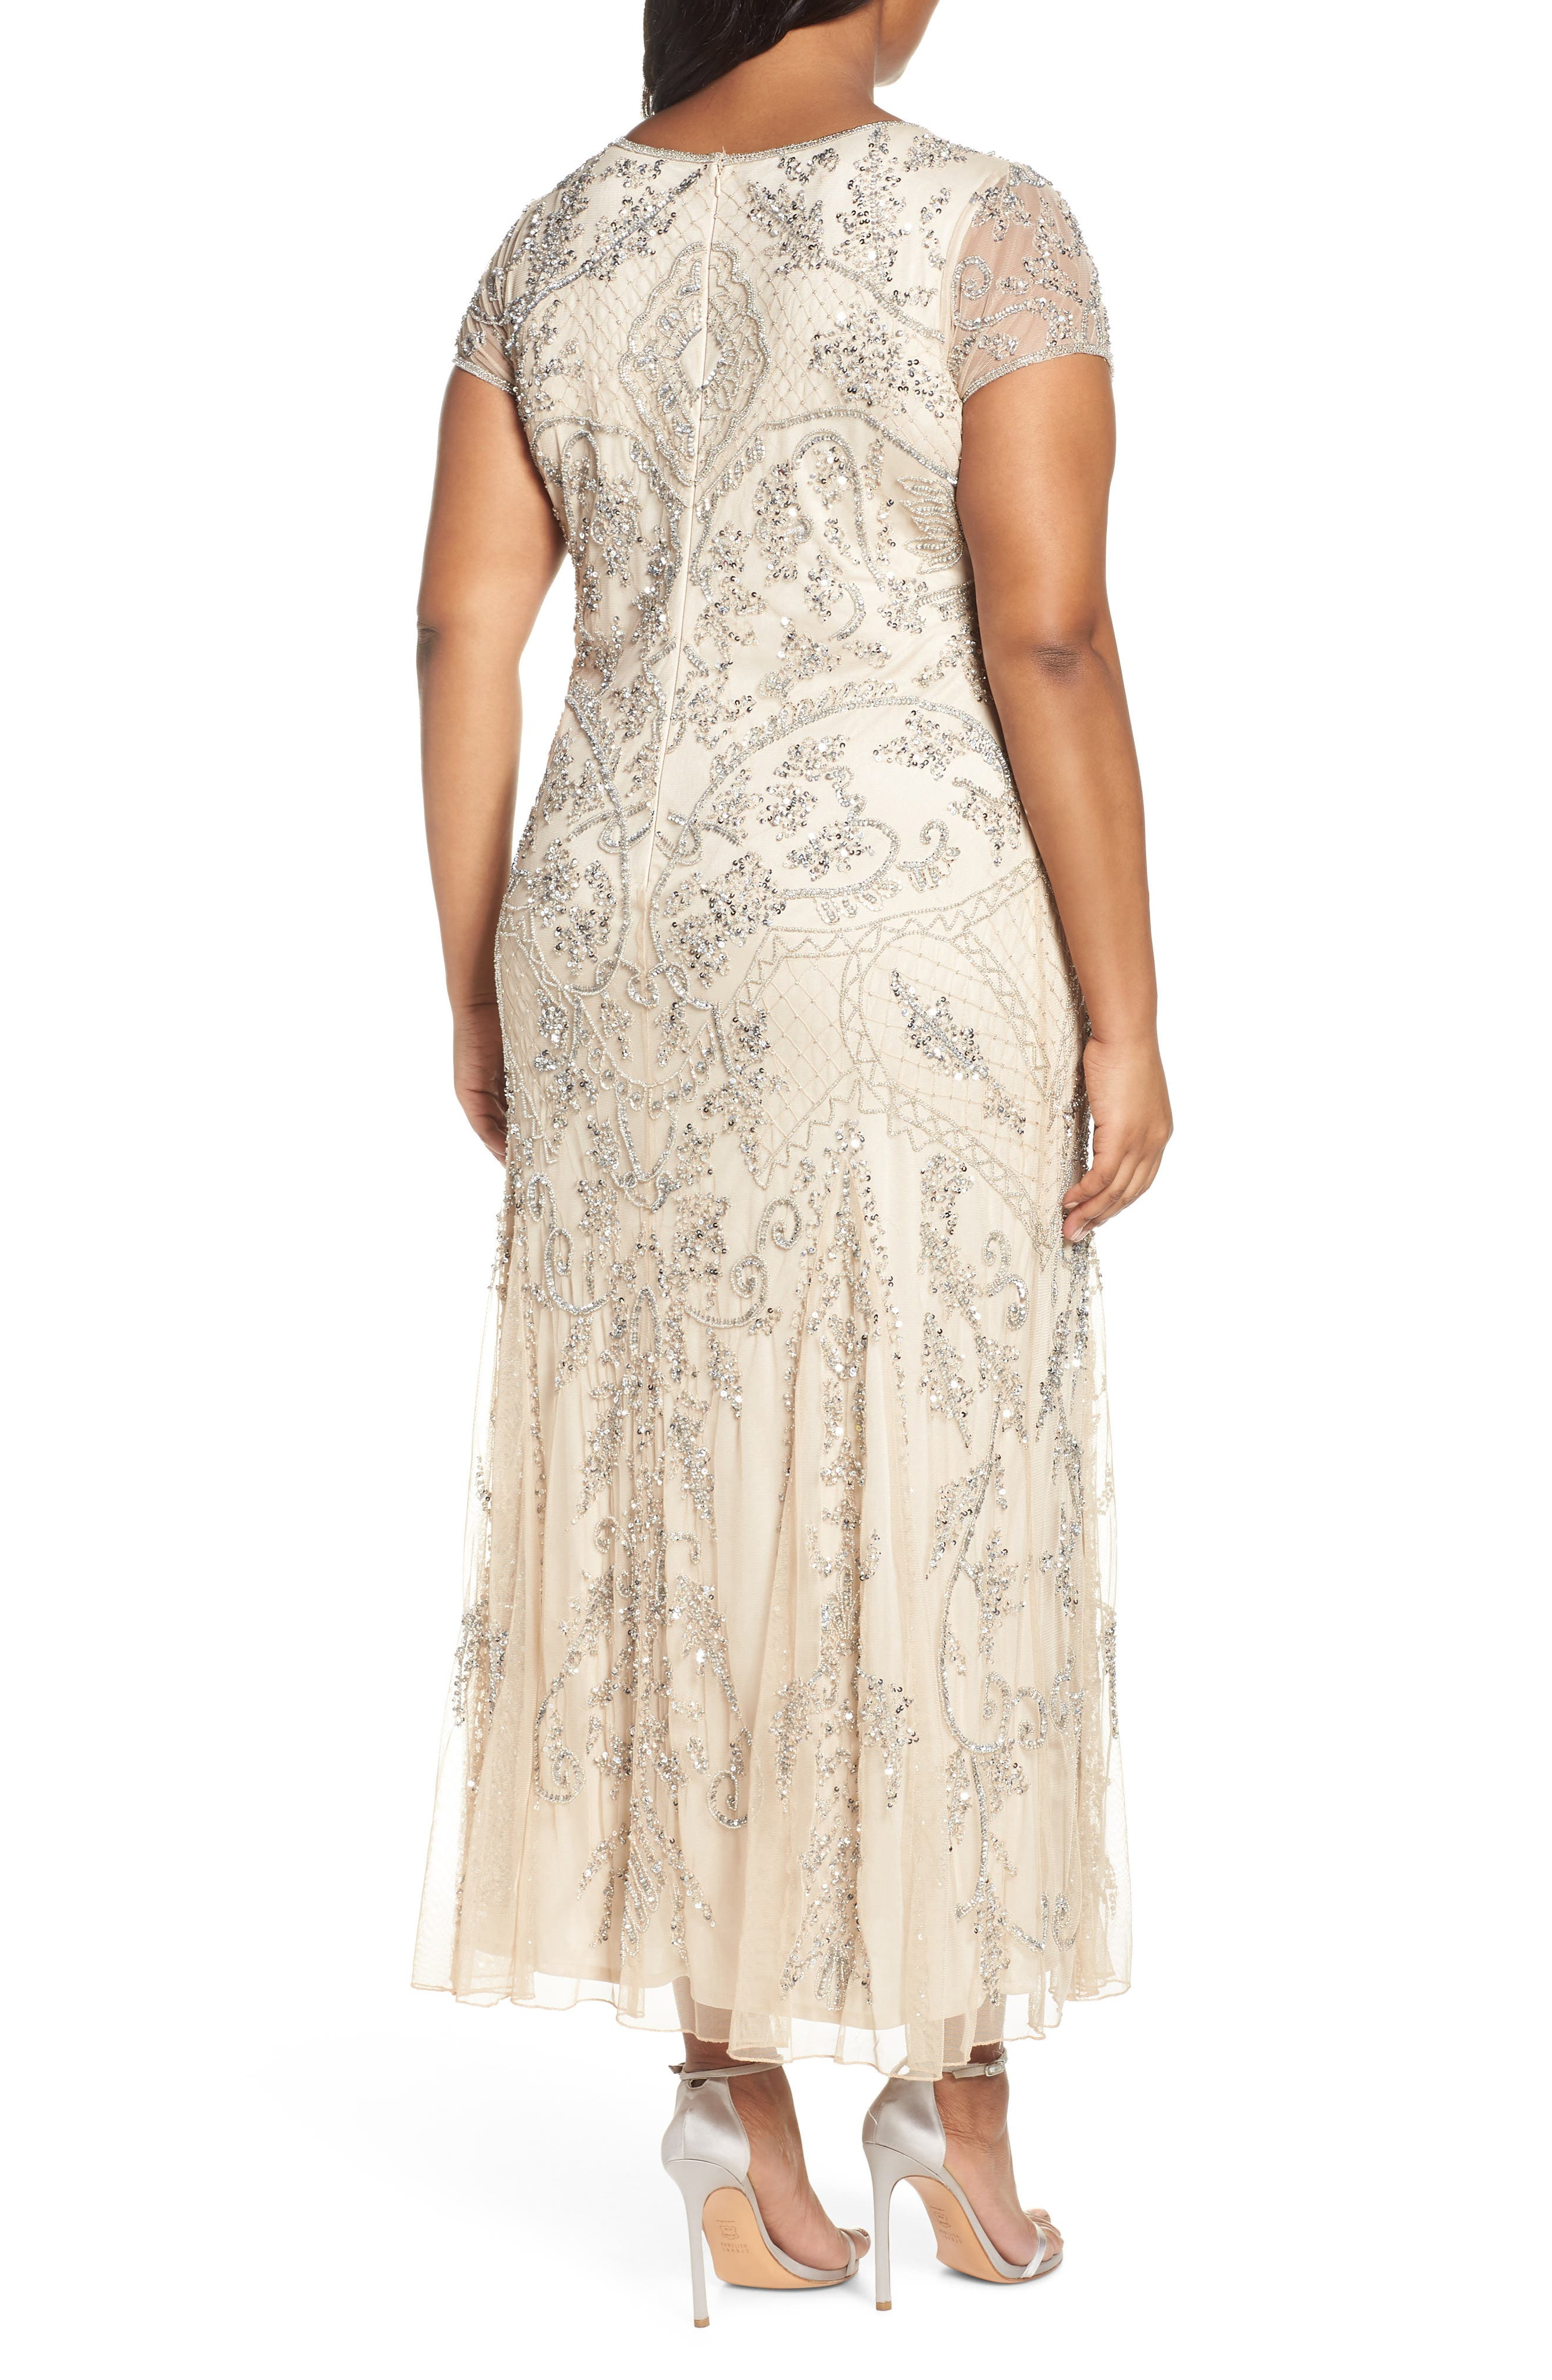 PISARRO NIGHTS, Beaded Short Sleeve Column Gown, Alternate thumbnail 2, color, CHAMPAGNE/ SILVER